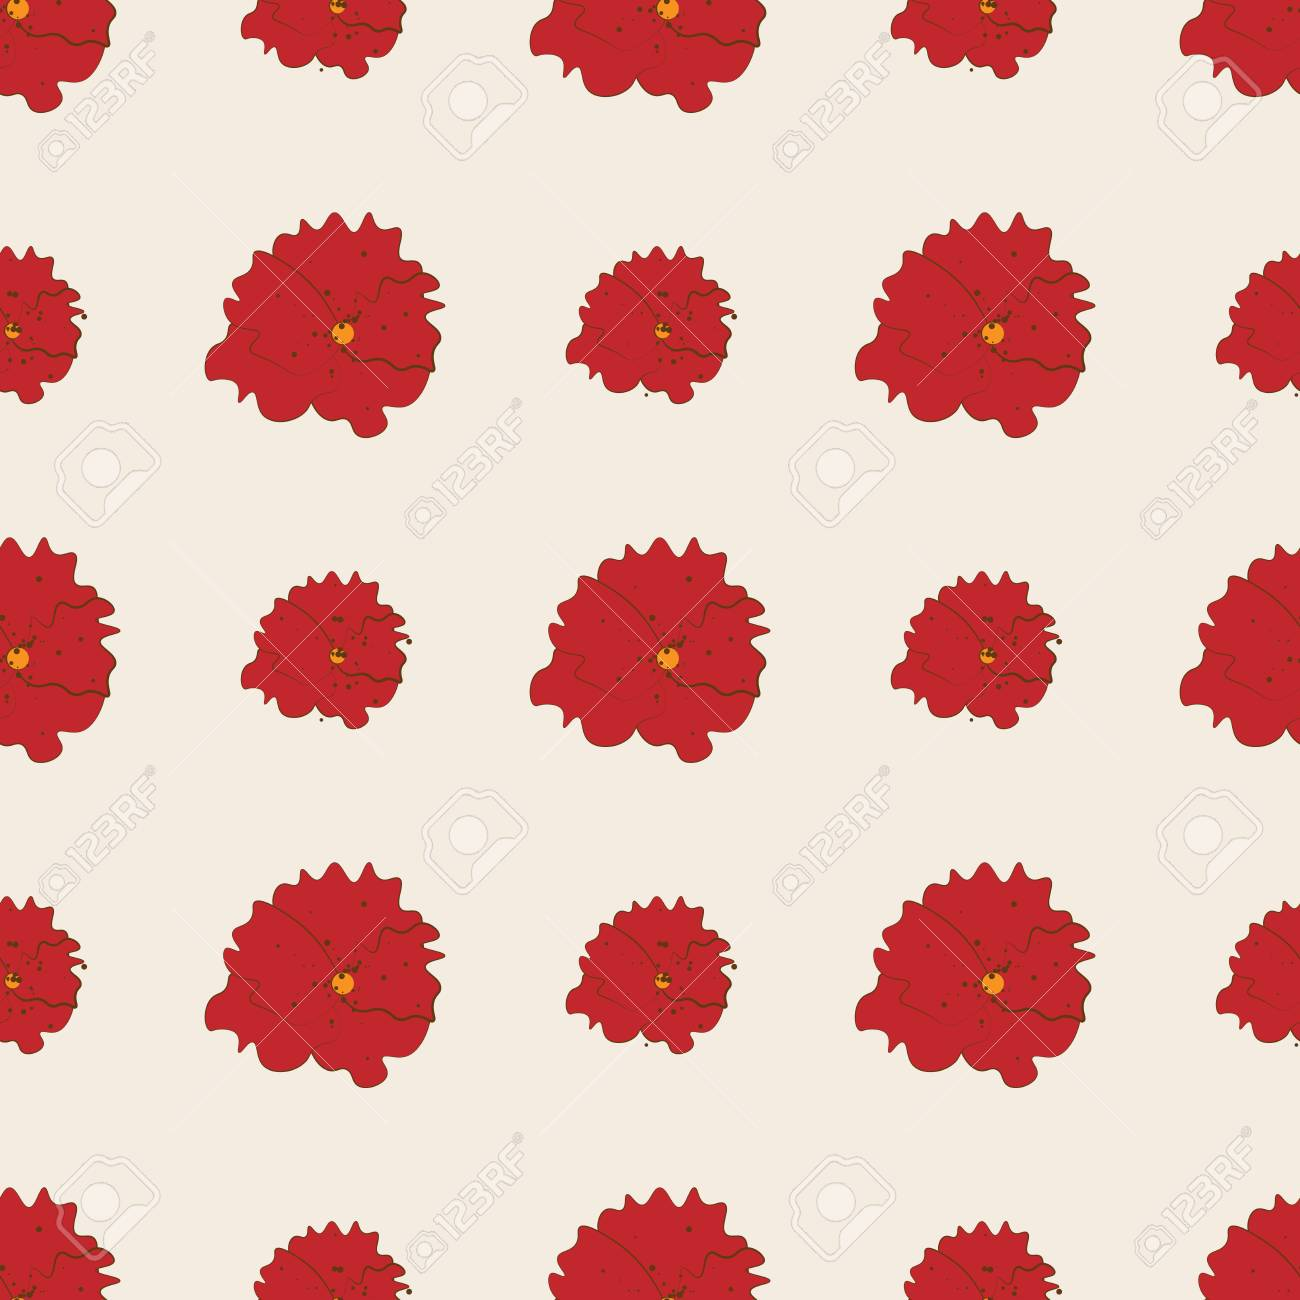 red poppy flowers seamless pattern on white background fashion